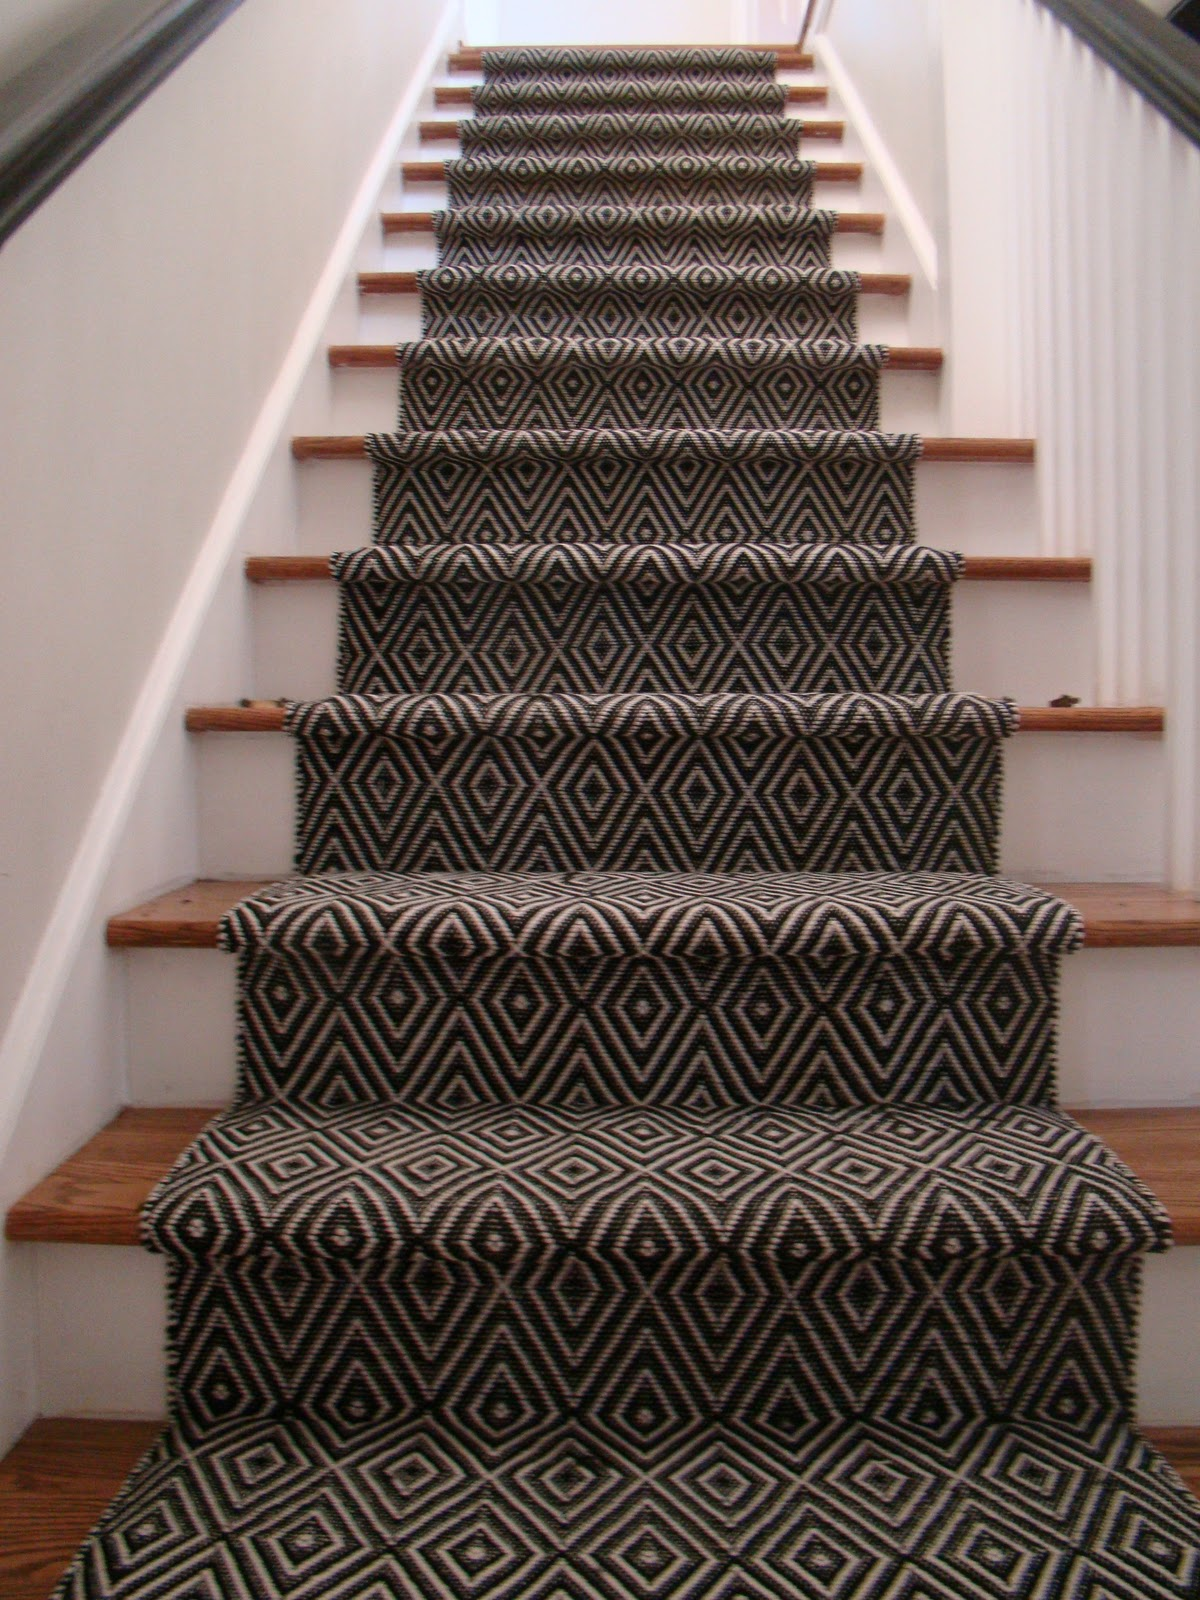 Astounding dash and albert runner at home stairways combinet with laminate floor stairs